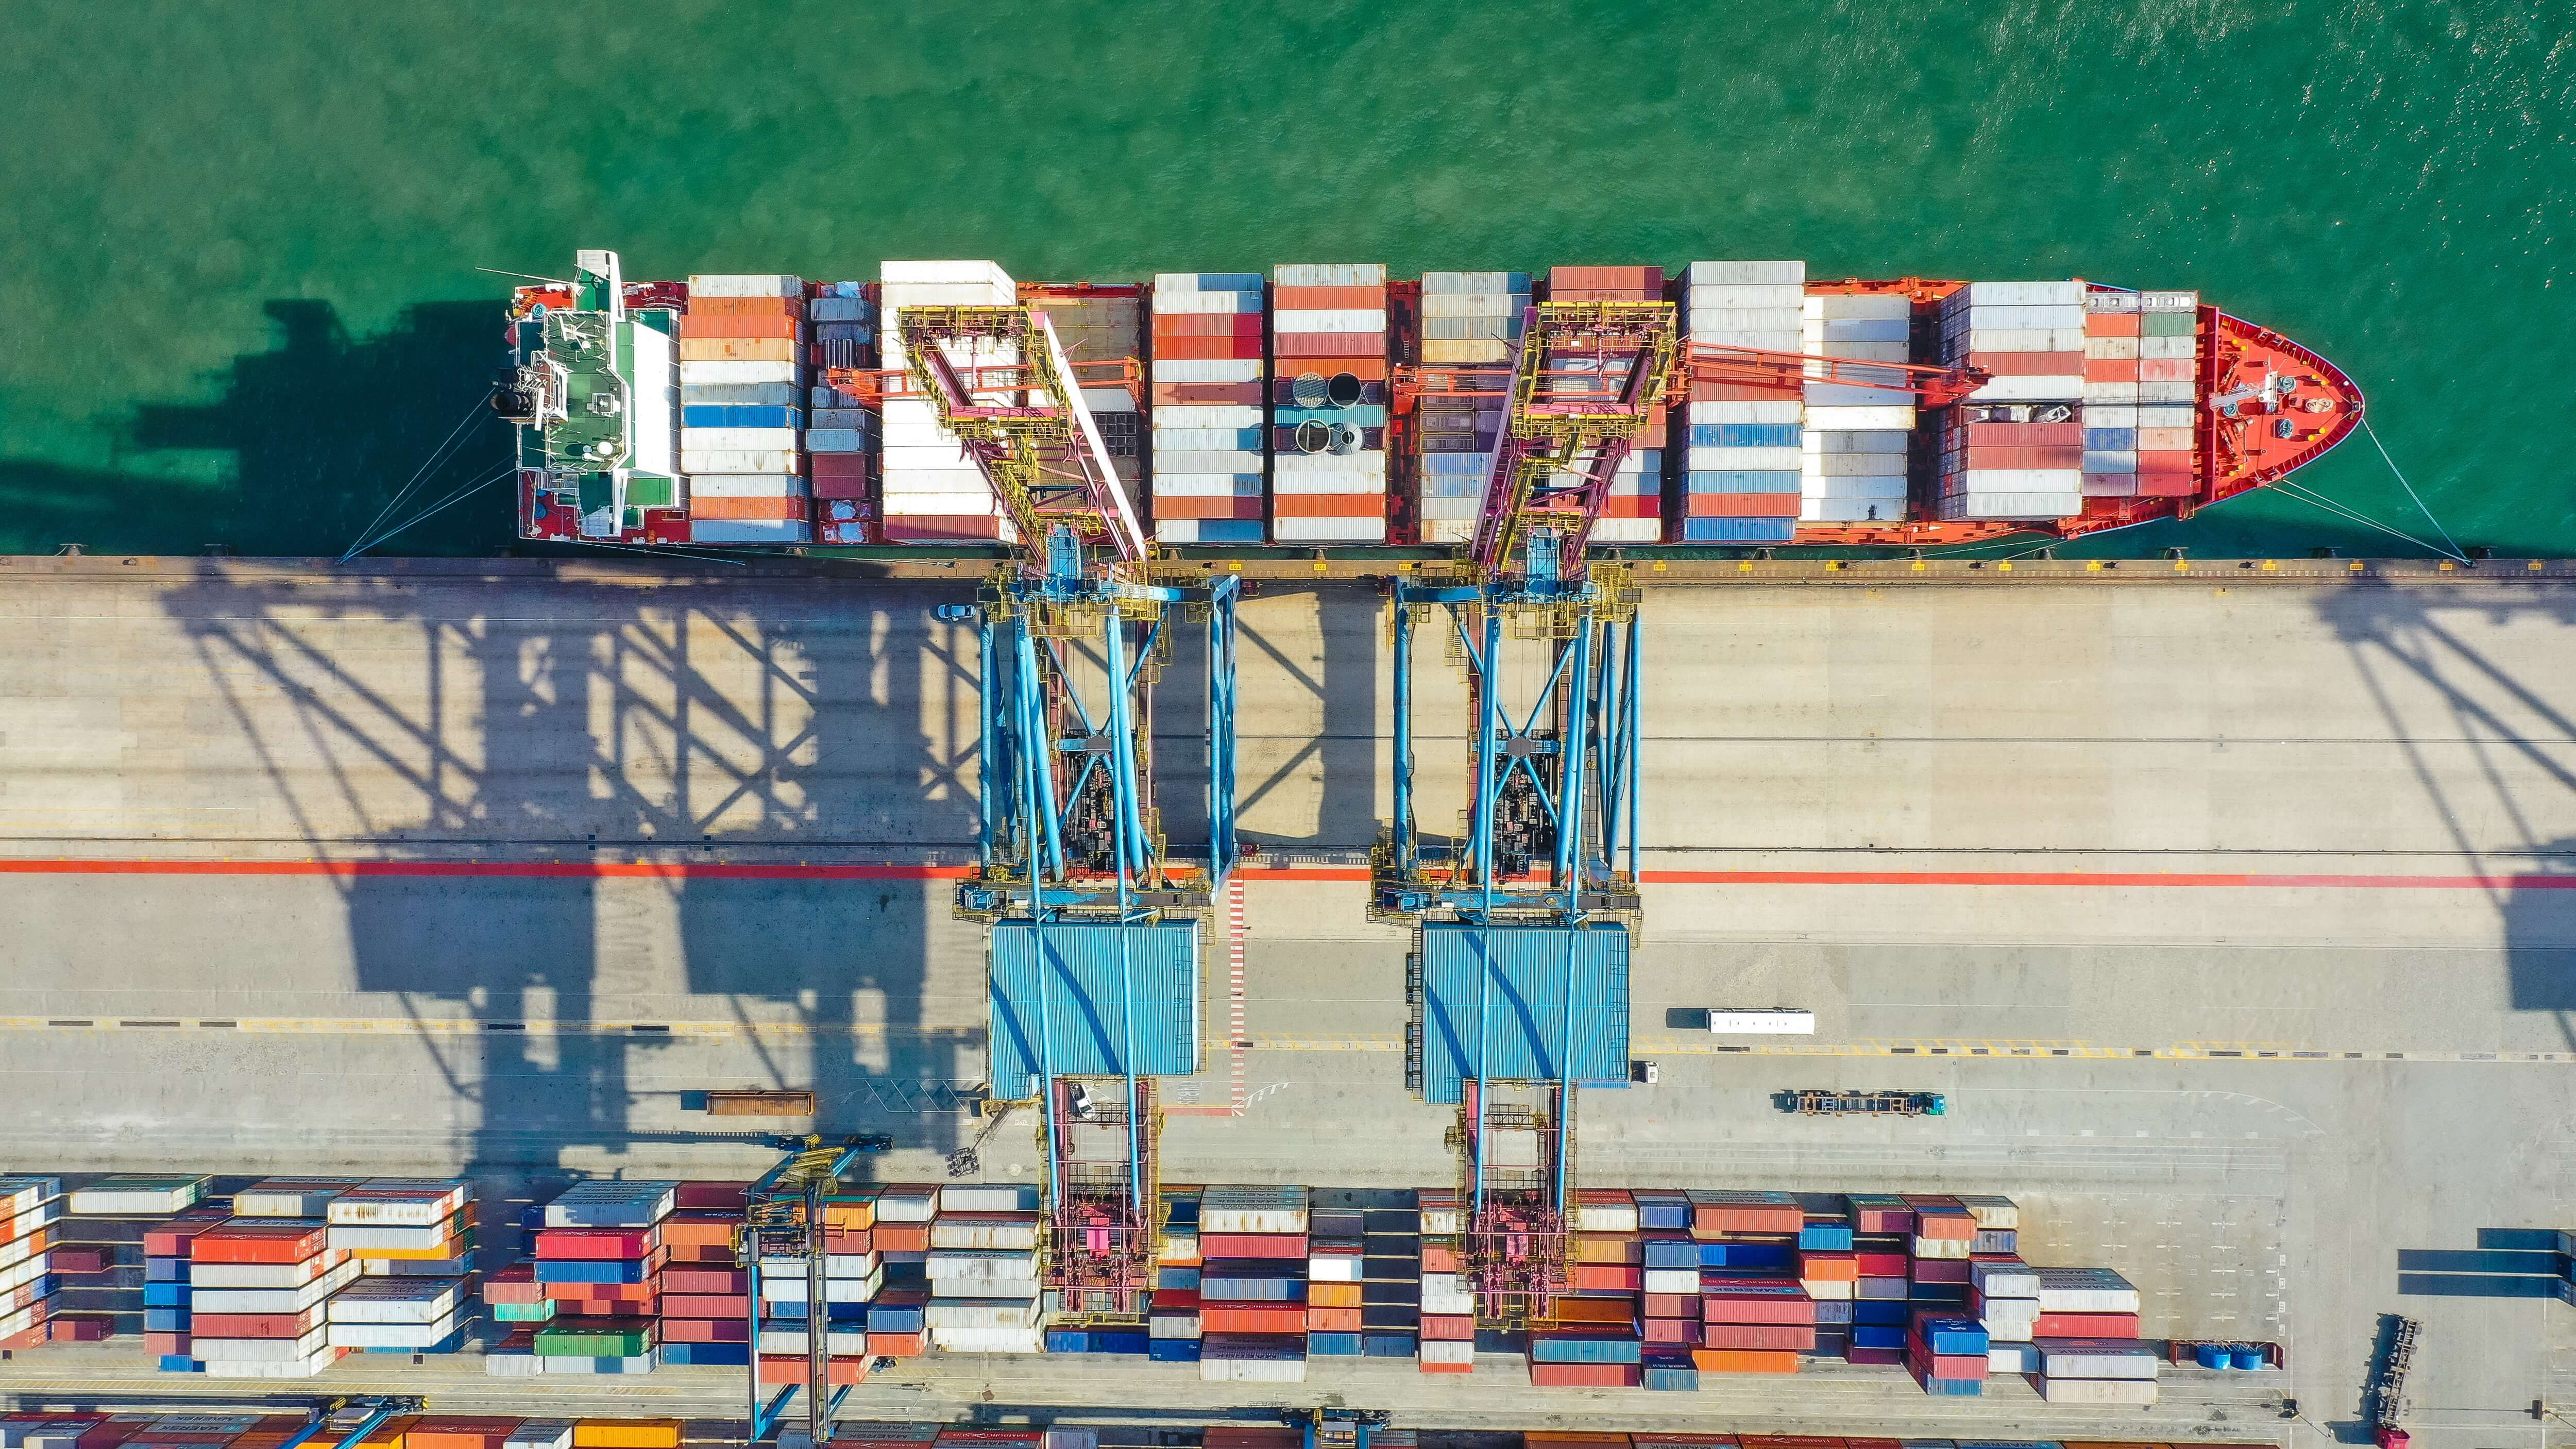 container ship docked at sea